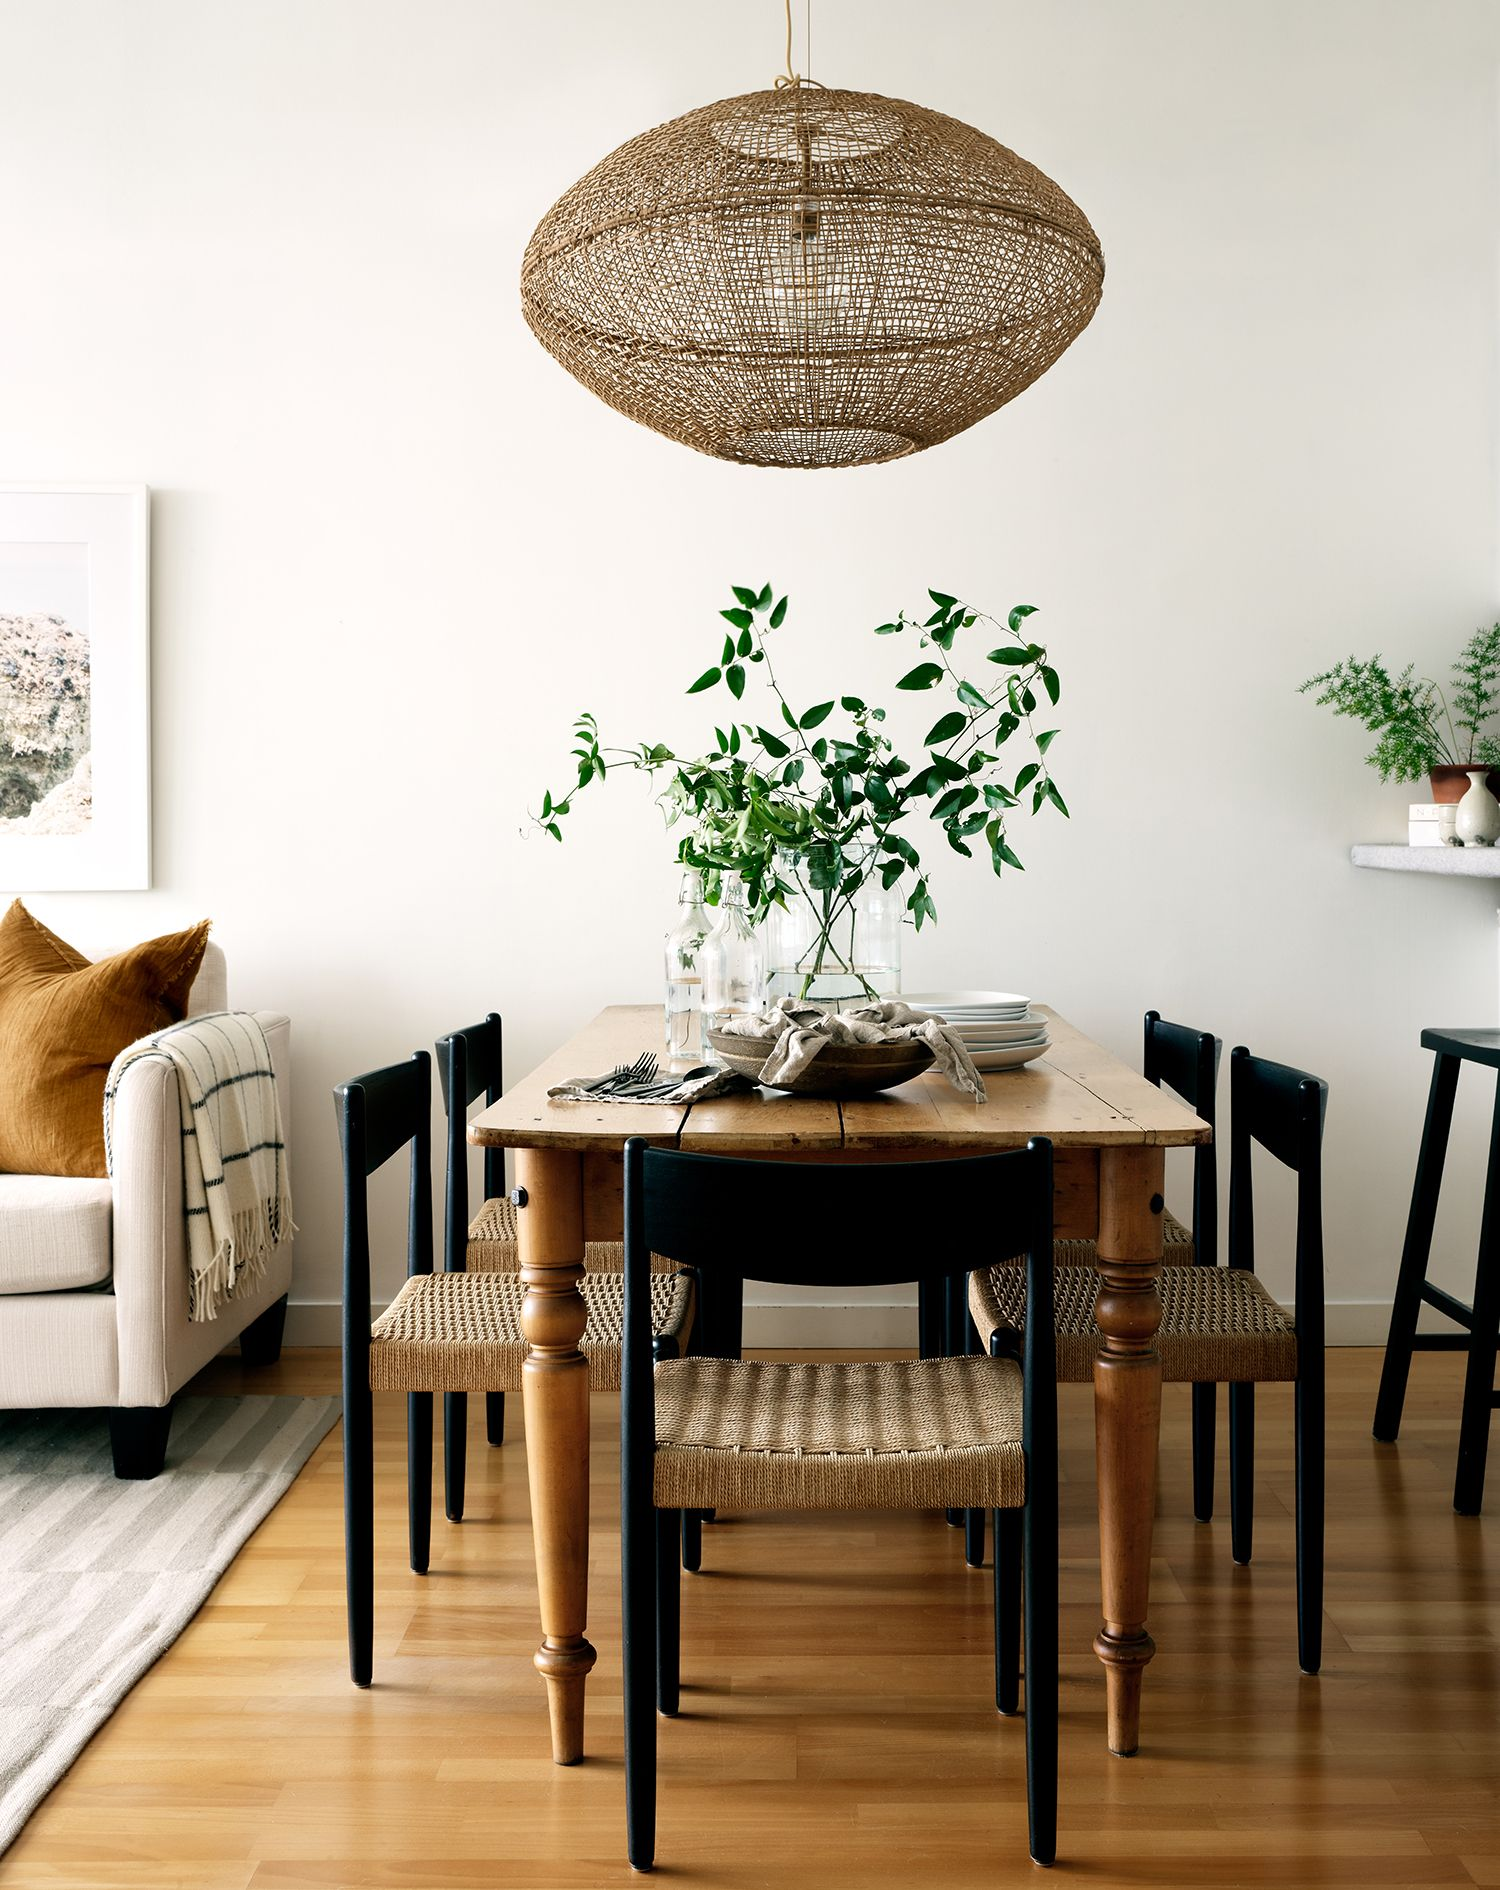 2021 Paint Color Trends, Dining Room Wall Colors 2021